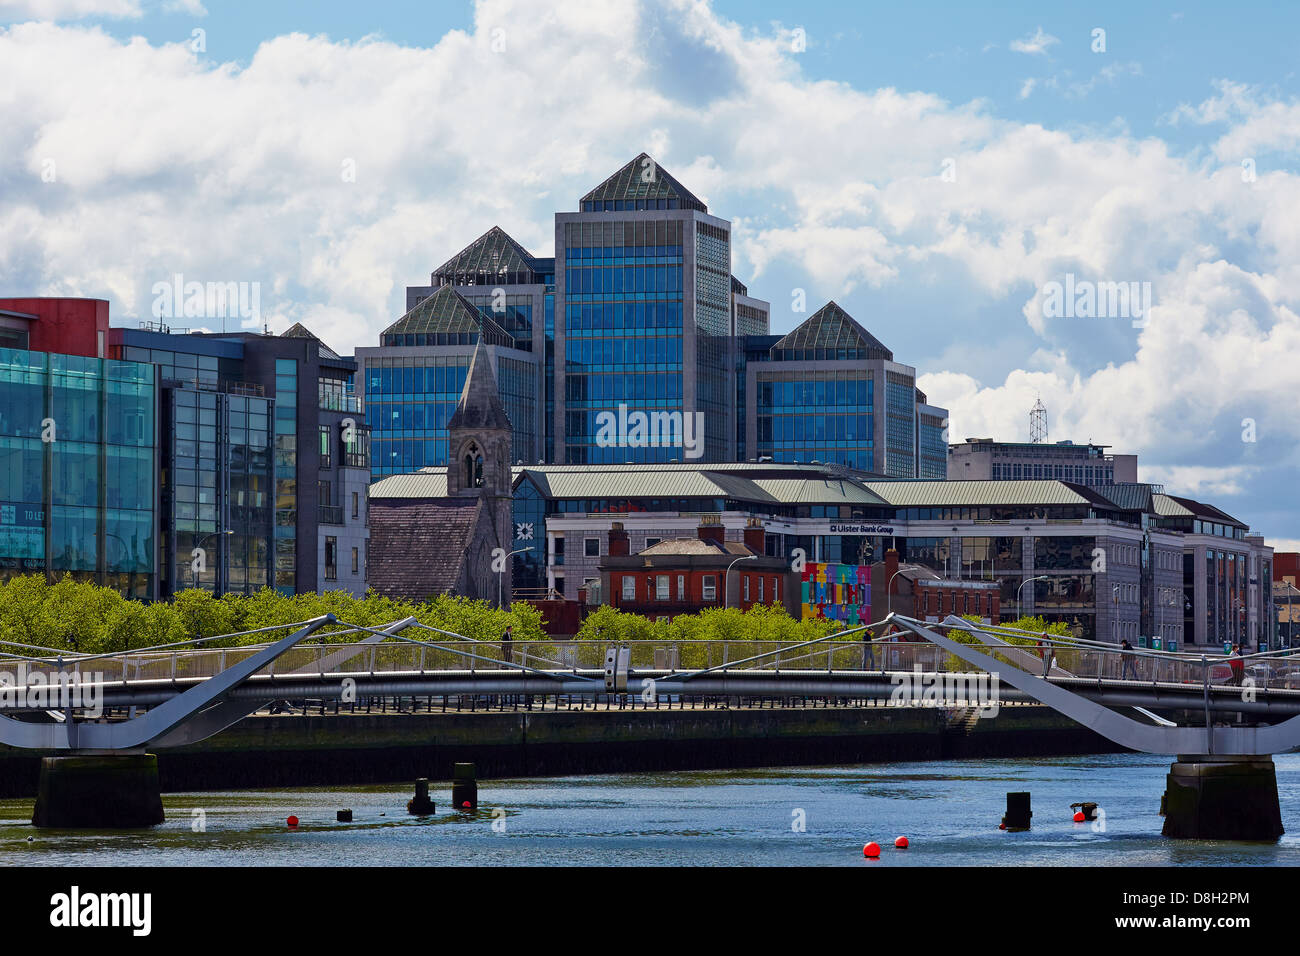 Dublin city skyline showing the Immaculate Heart of Mary church overshadowed by the Ulster bank group HQ on Georges - Stock Image